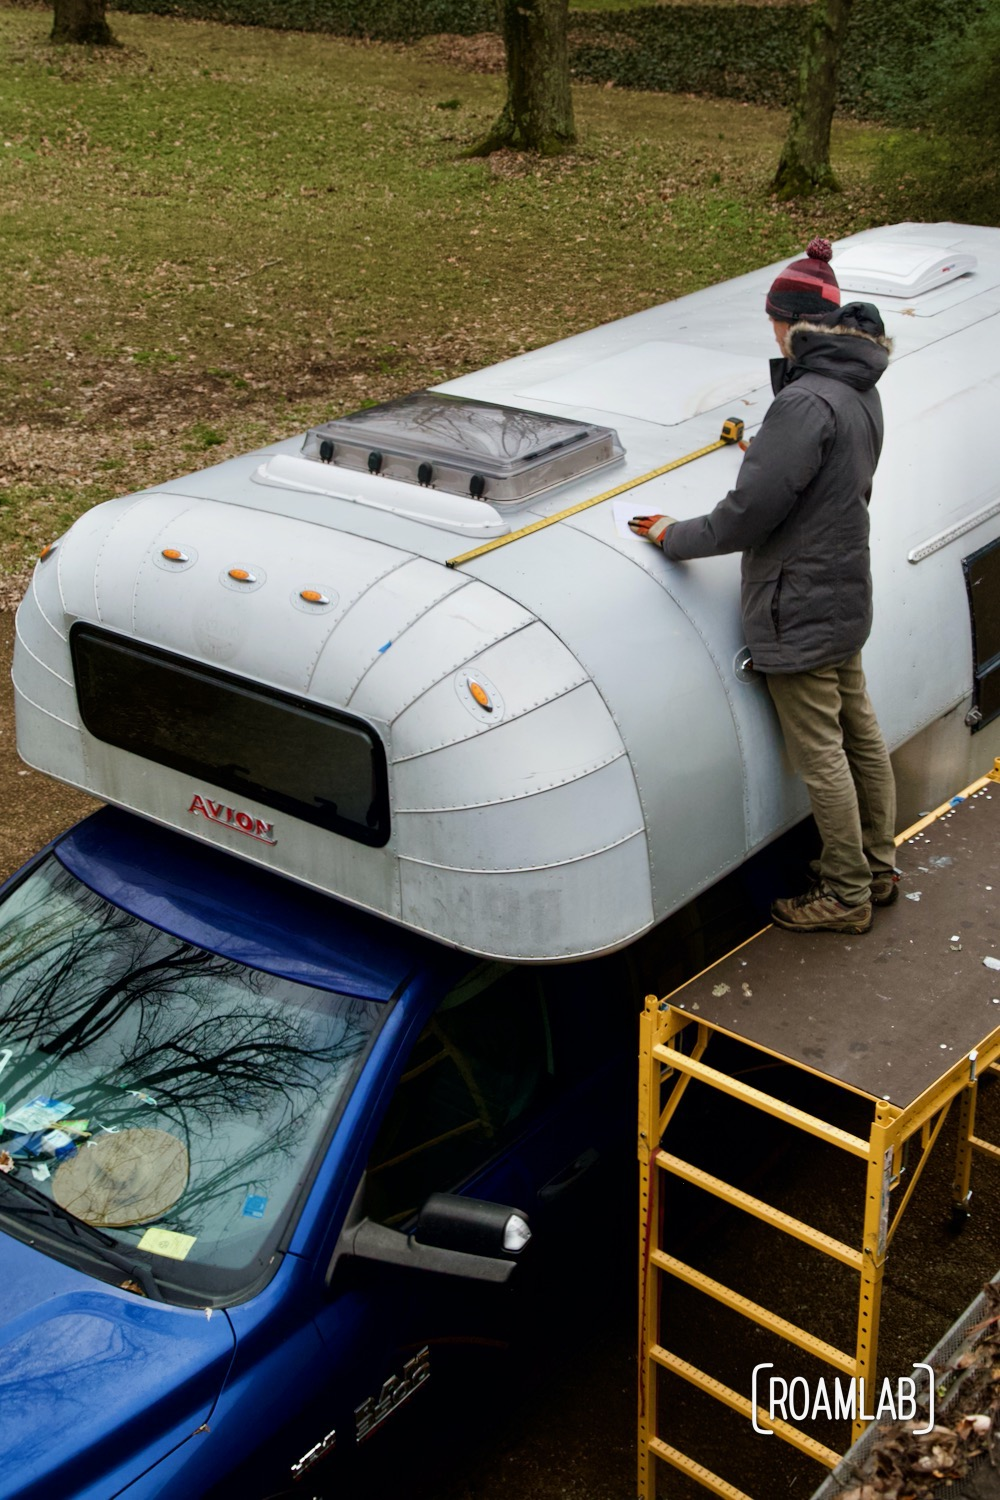 Calculating the solar capacity of an Avion C11 truck camper roof